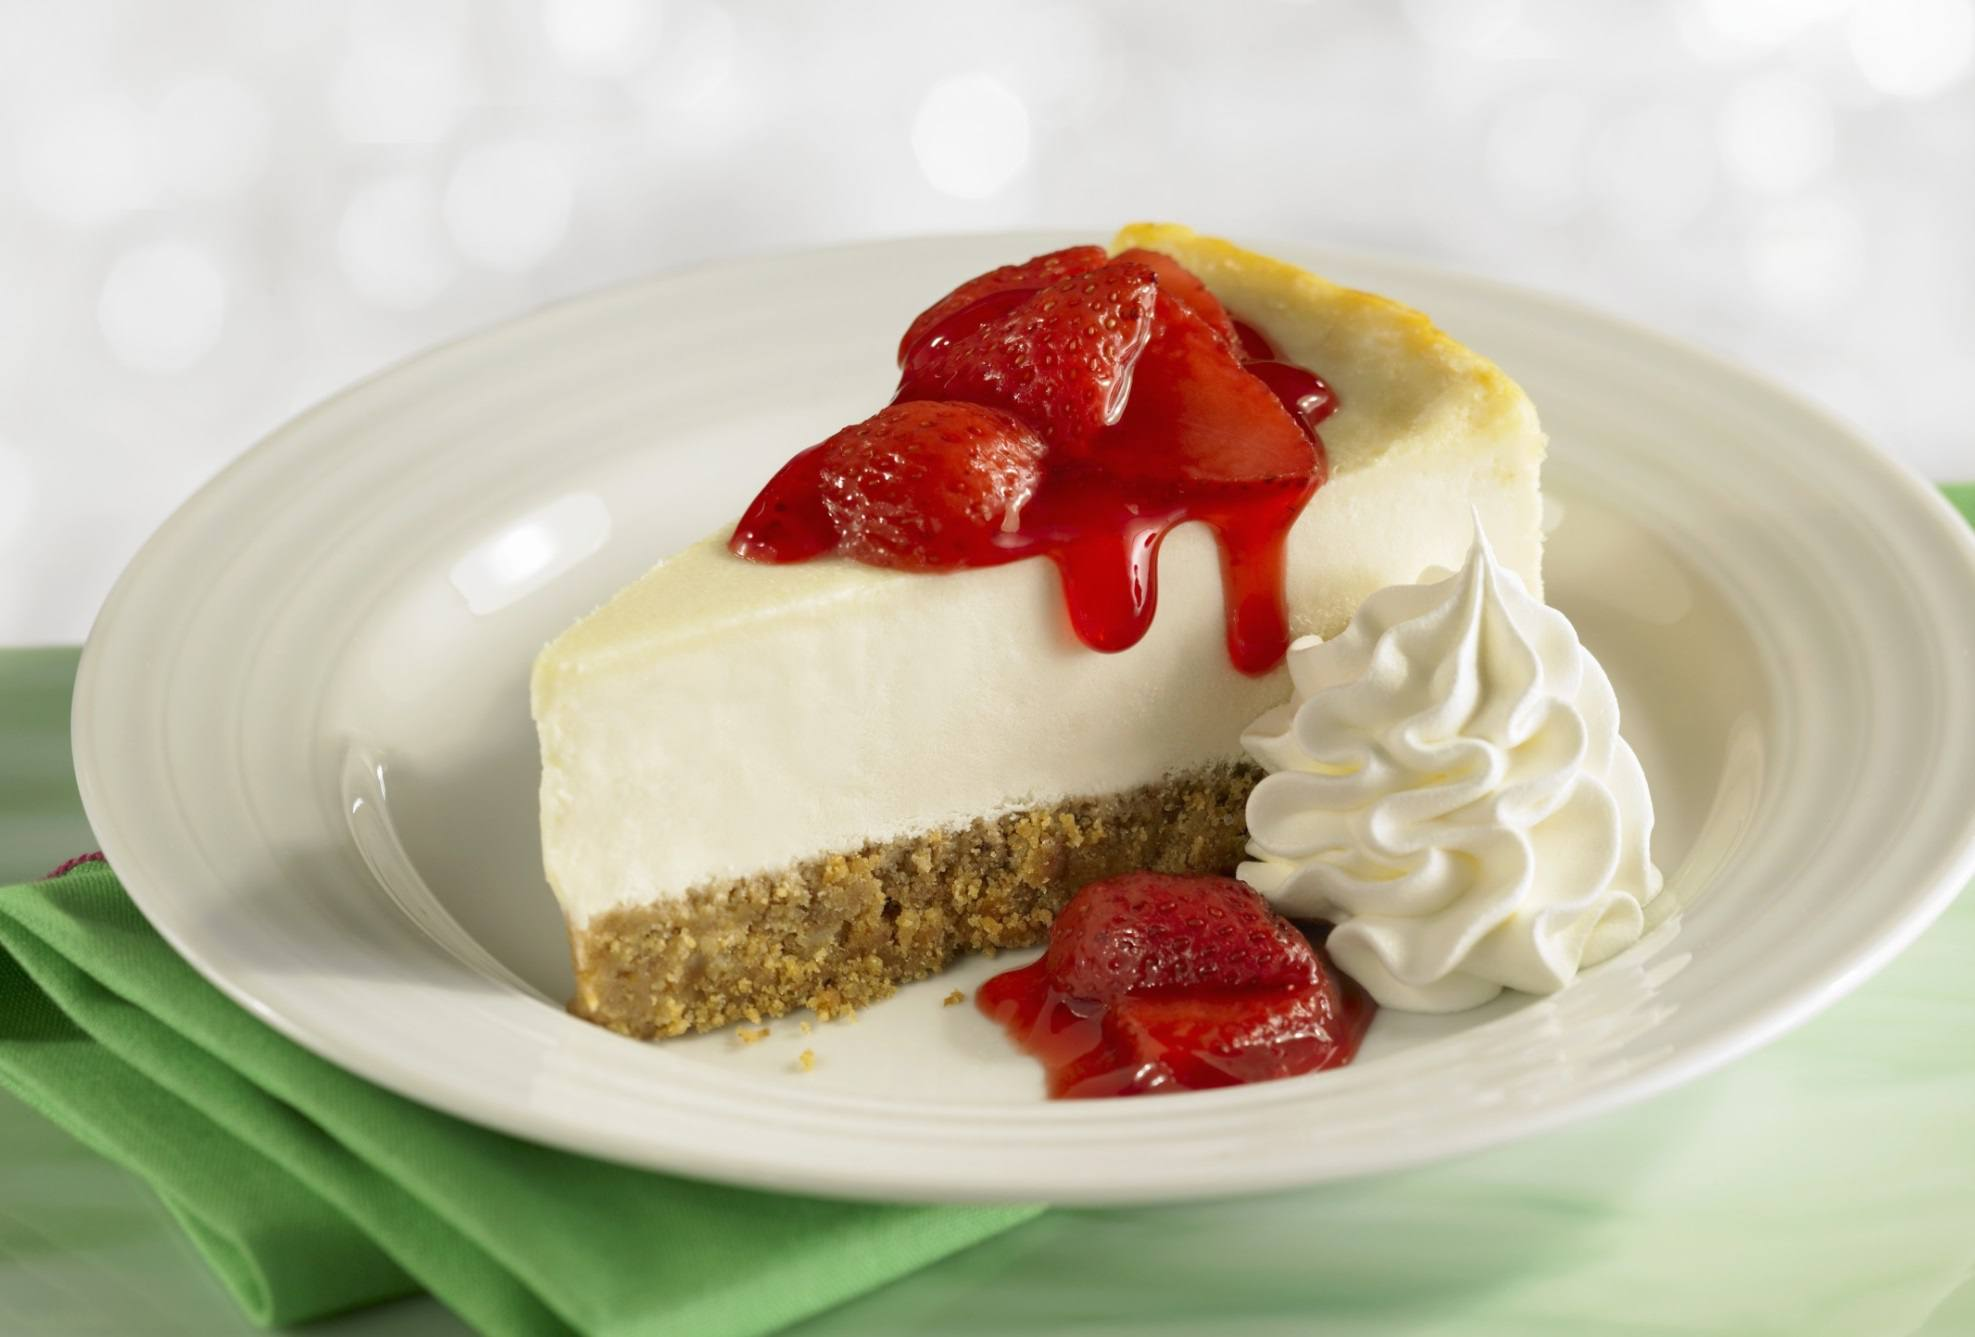 Top 10 Low-Carb and Gluten-Free Dessert Recipes